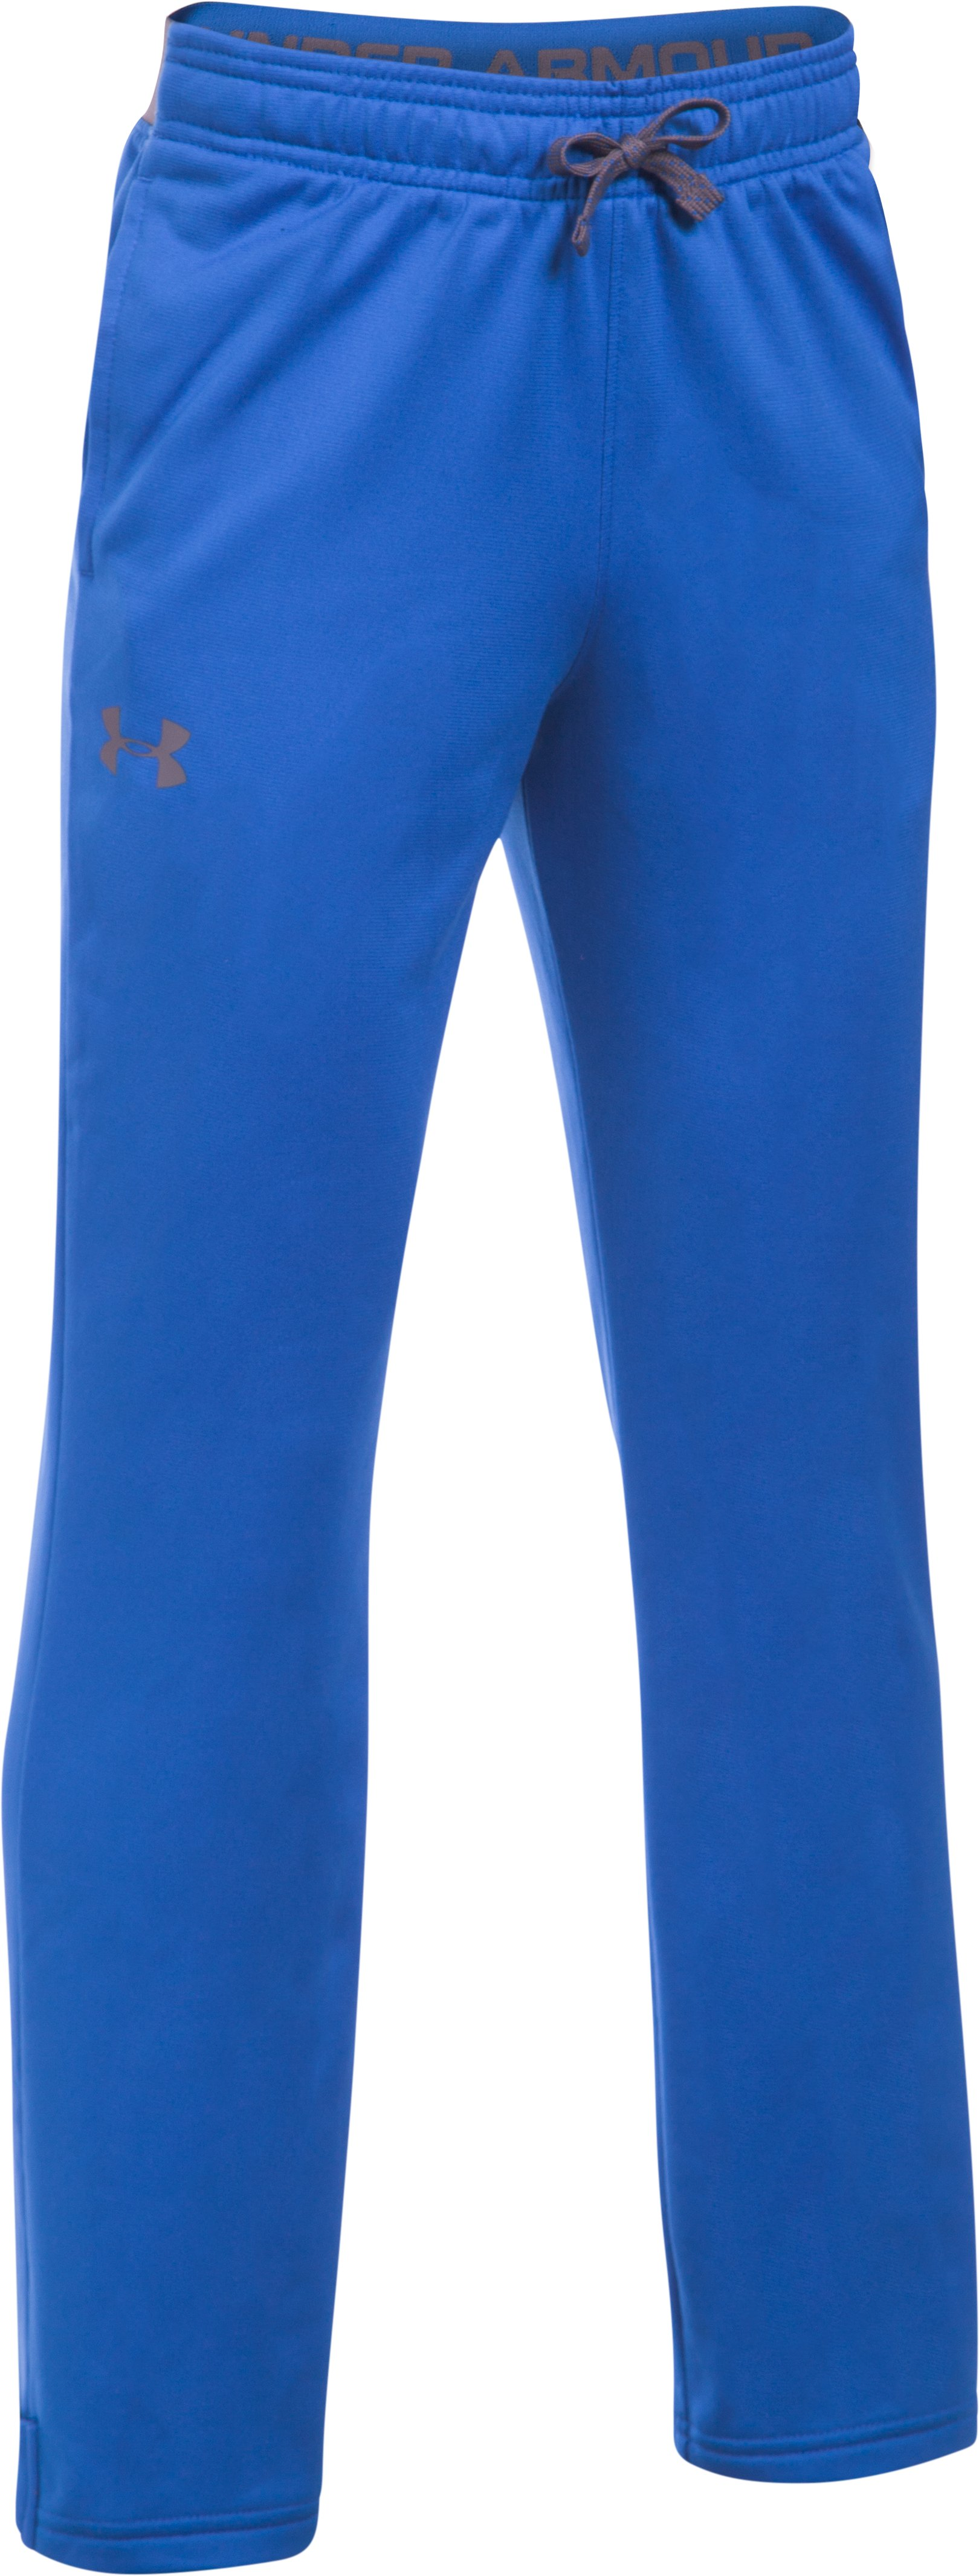 Boys' UA Brawler Slim Pants, ULTRA BLUE